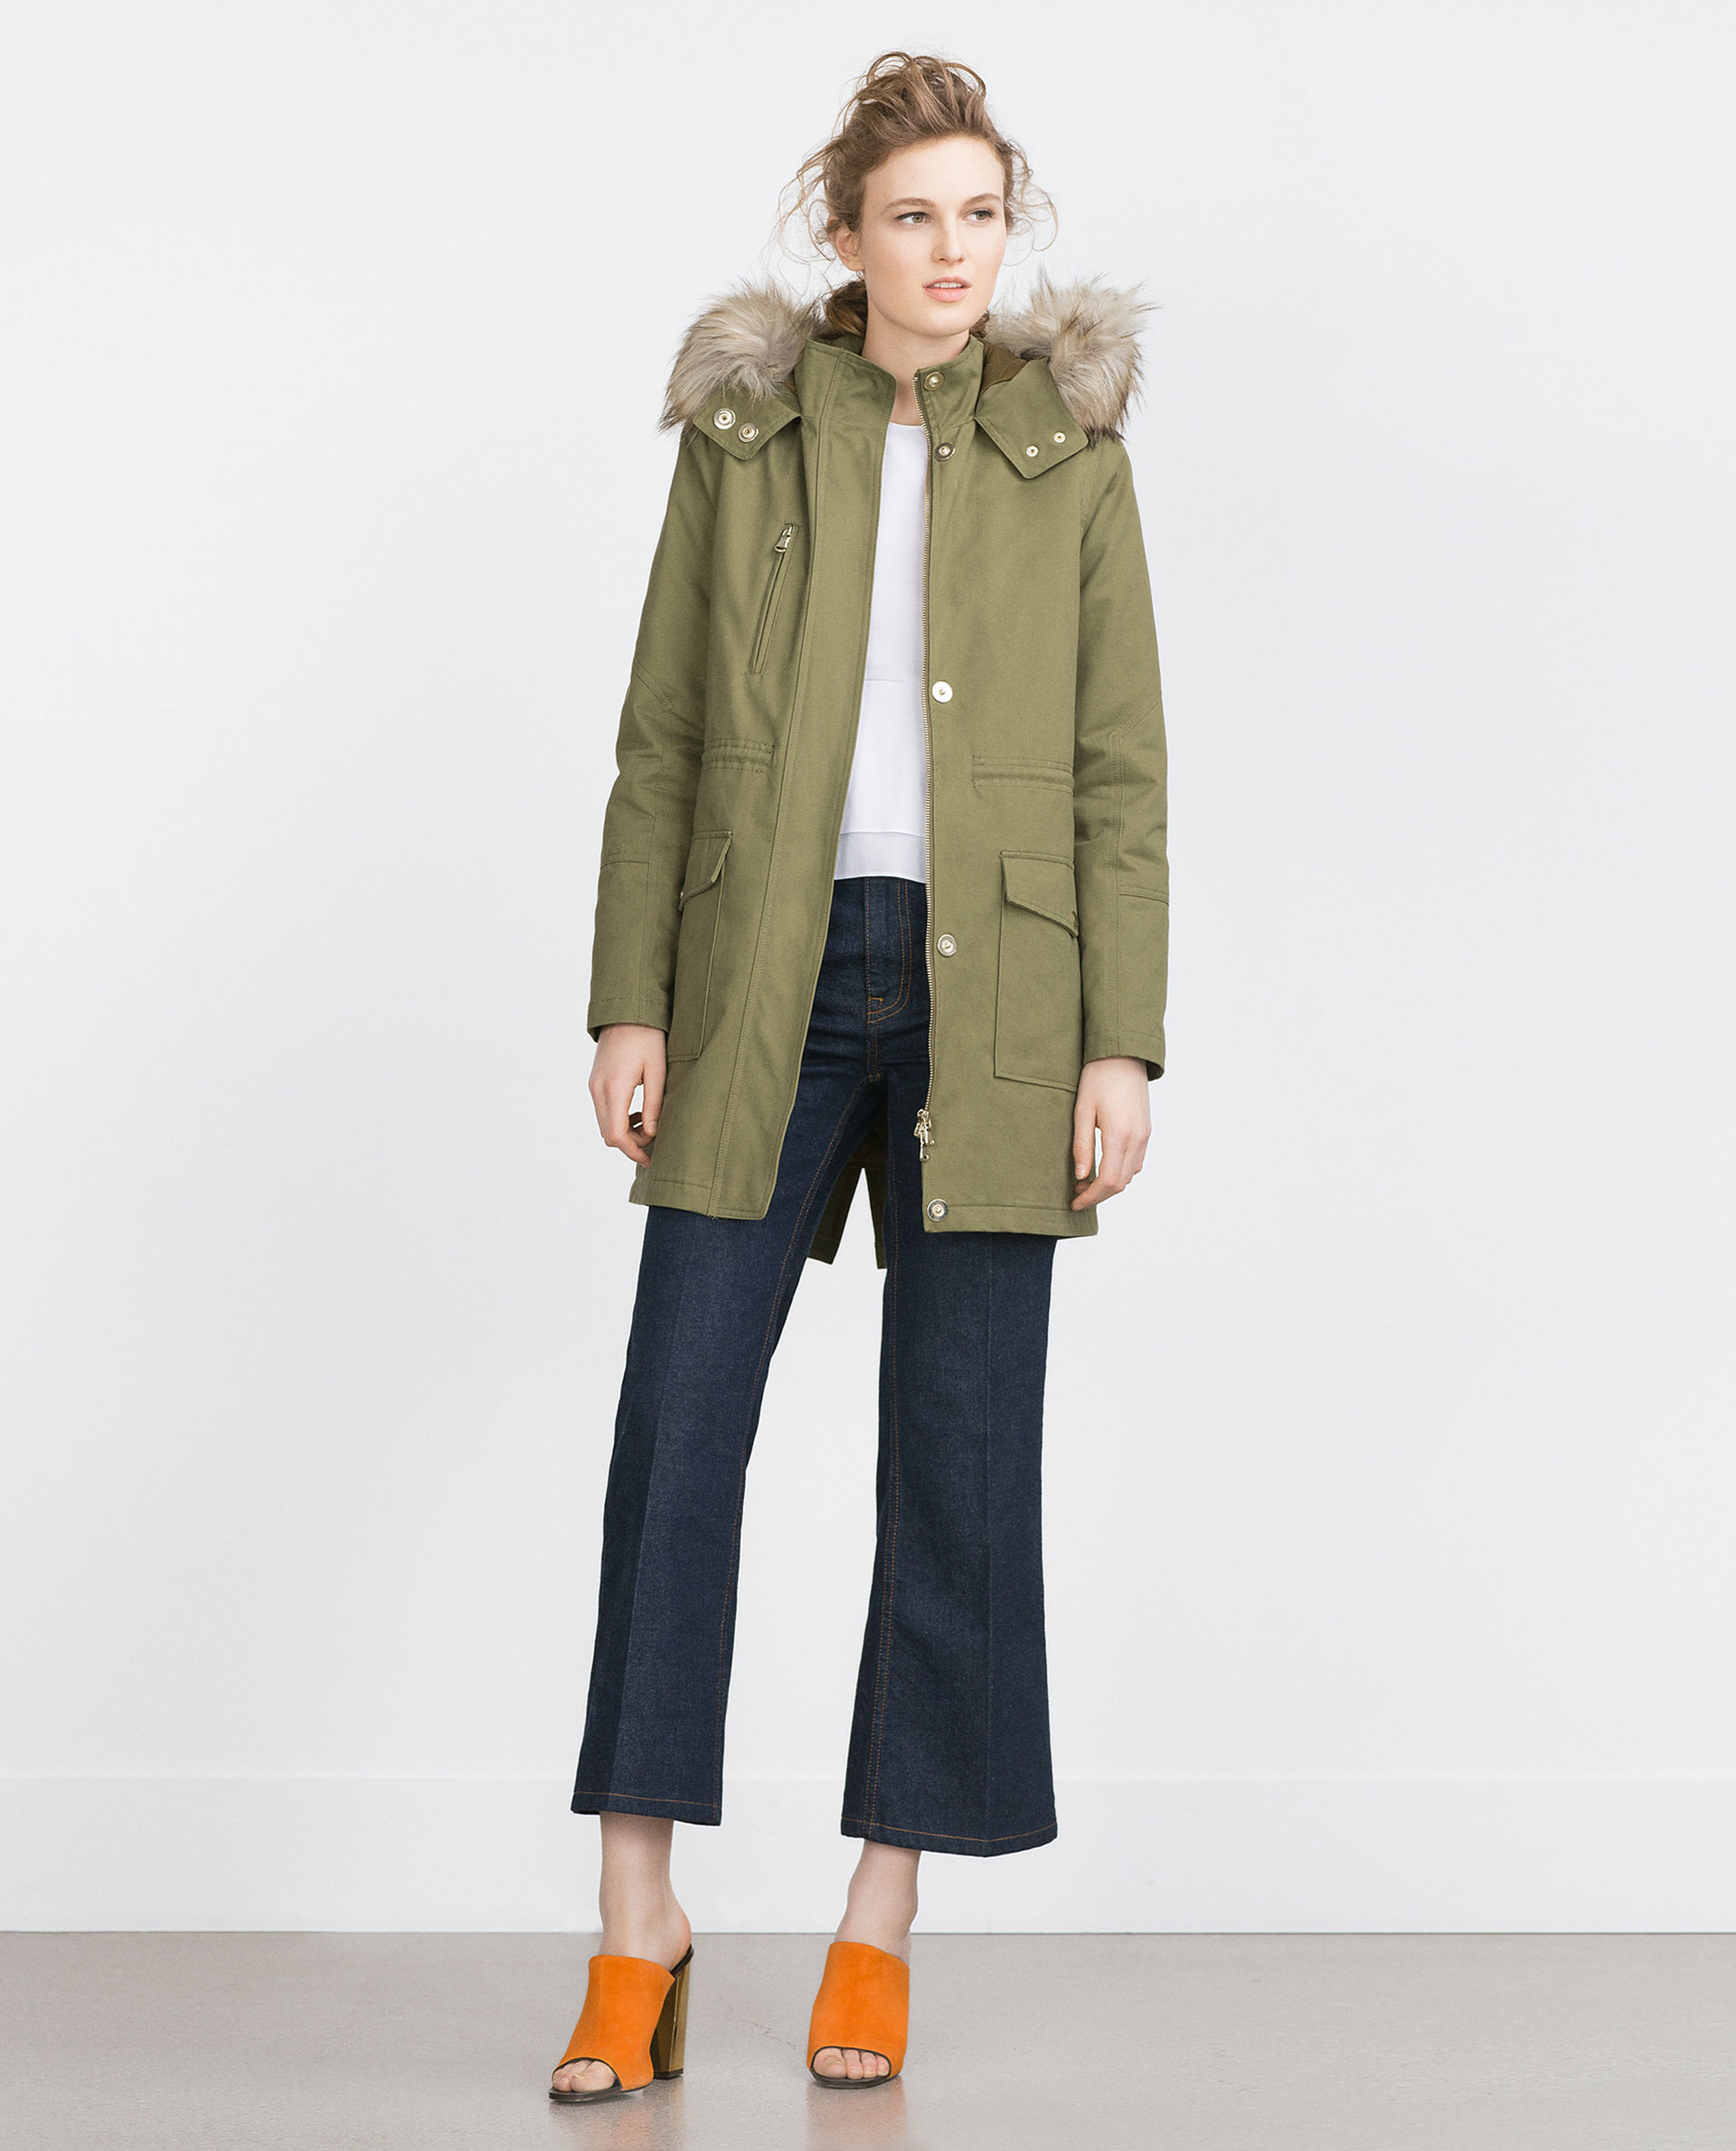 Zara Oversized Parka in Natural | Lyst